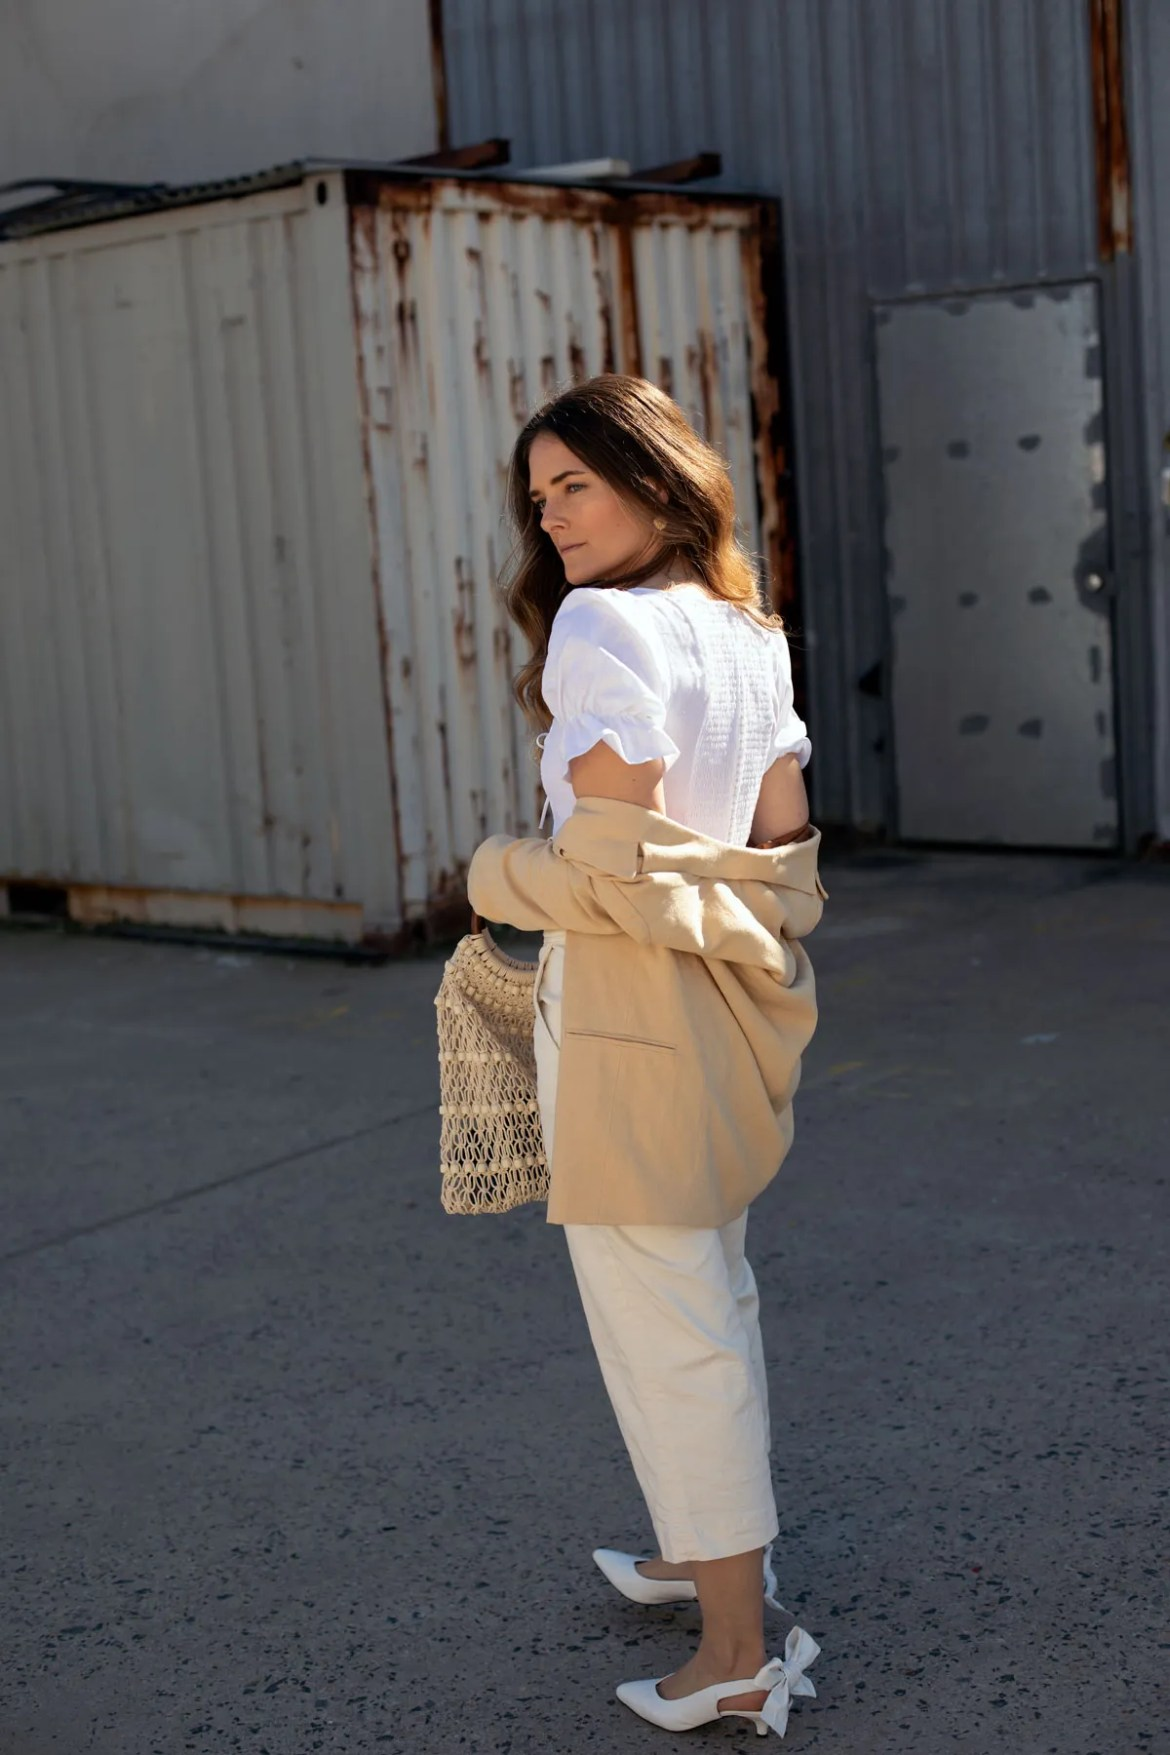 beige and cream outfit idea